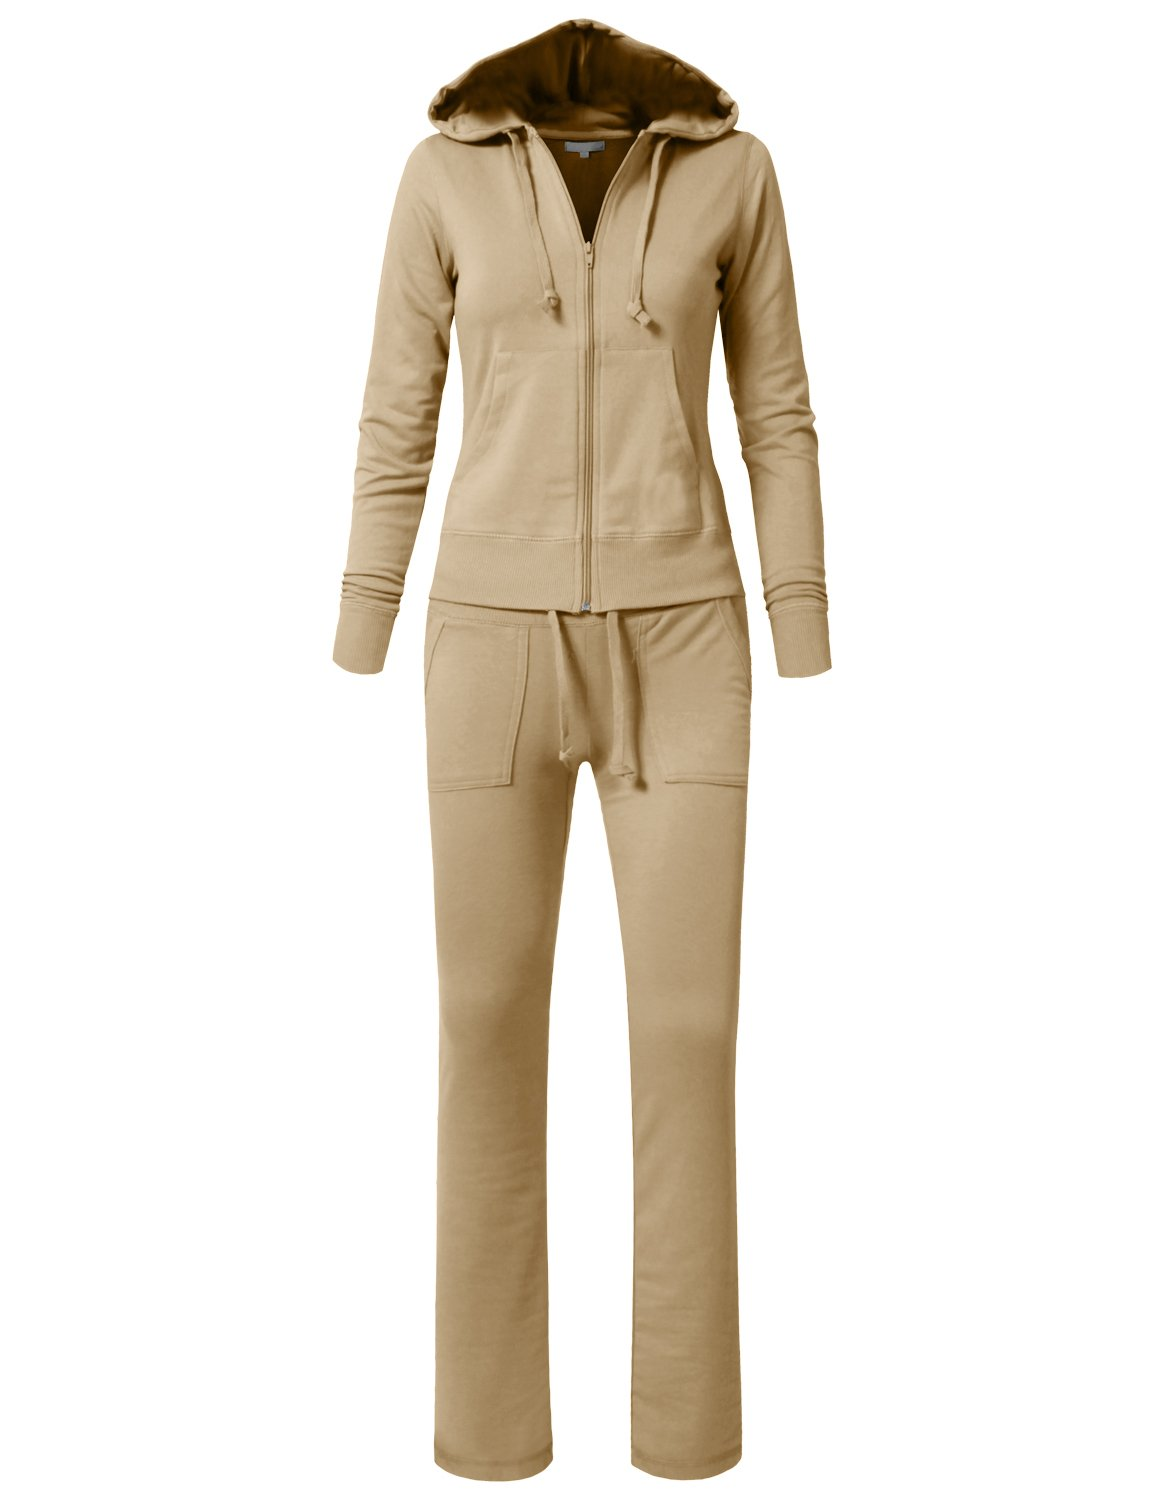 NE PEOPLE Womens Casual Basic Velour/Terry Zip up Hoodie Sweatsuit Set S-3XL